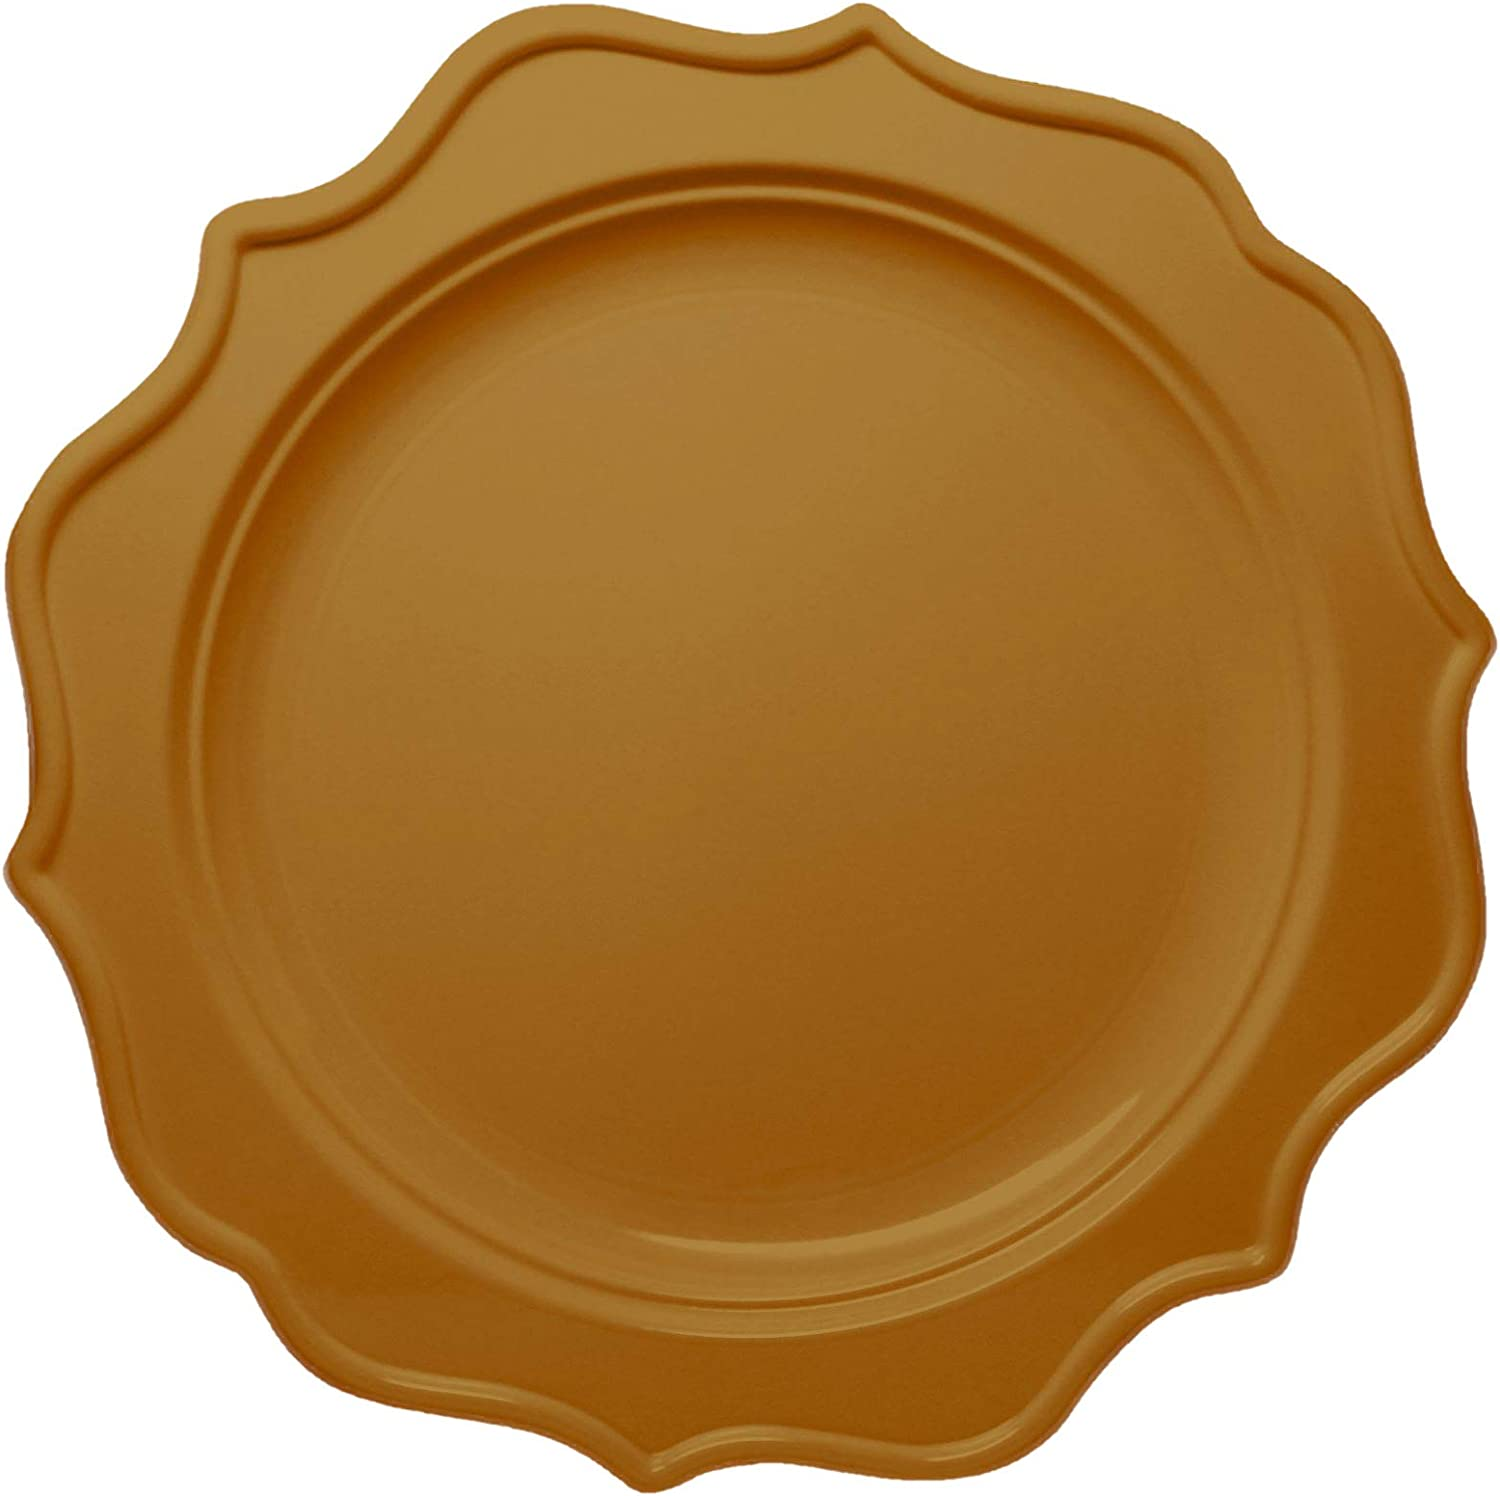 BPA-Free 48 8-Inch Salad Plates Tiger Chef 96 Pack Round Scalloped Rim Disposable Plastic Plate Set for 48 Guests Includes 48 10-Inch Dinner Plates